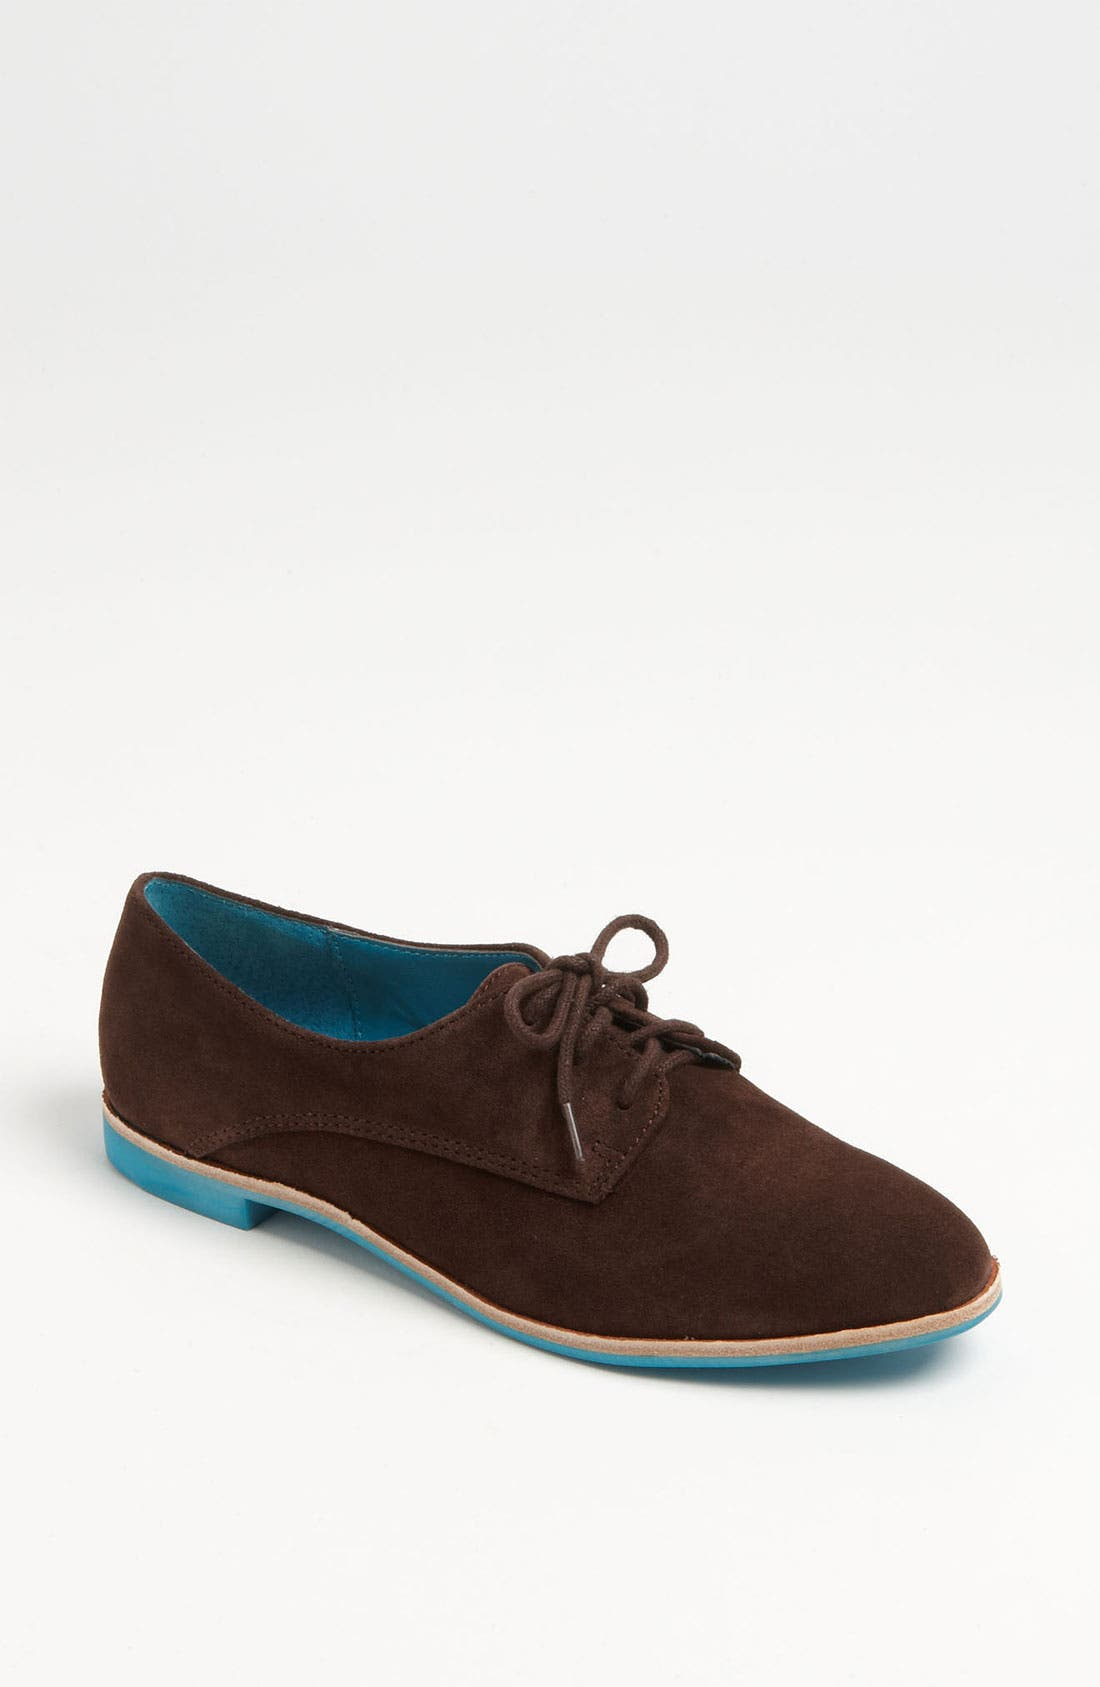 Main Image - DV by Dolce Vita 'Mini' Suede Lace-Up Oxford